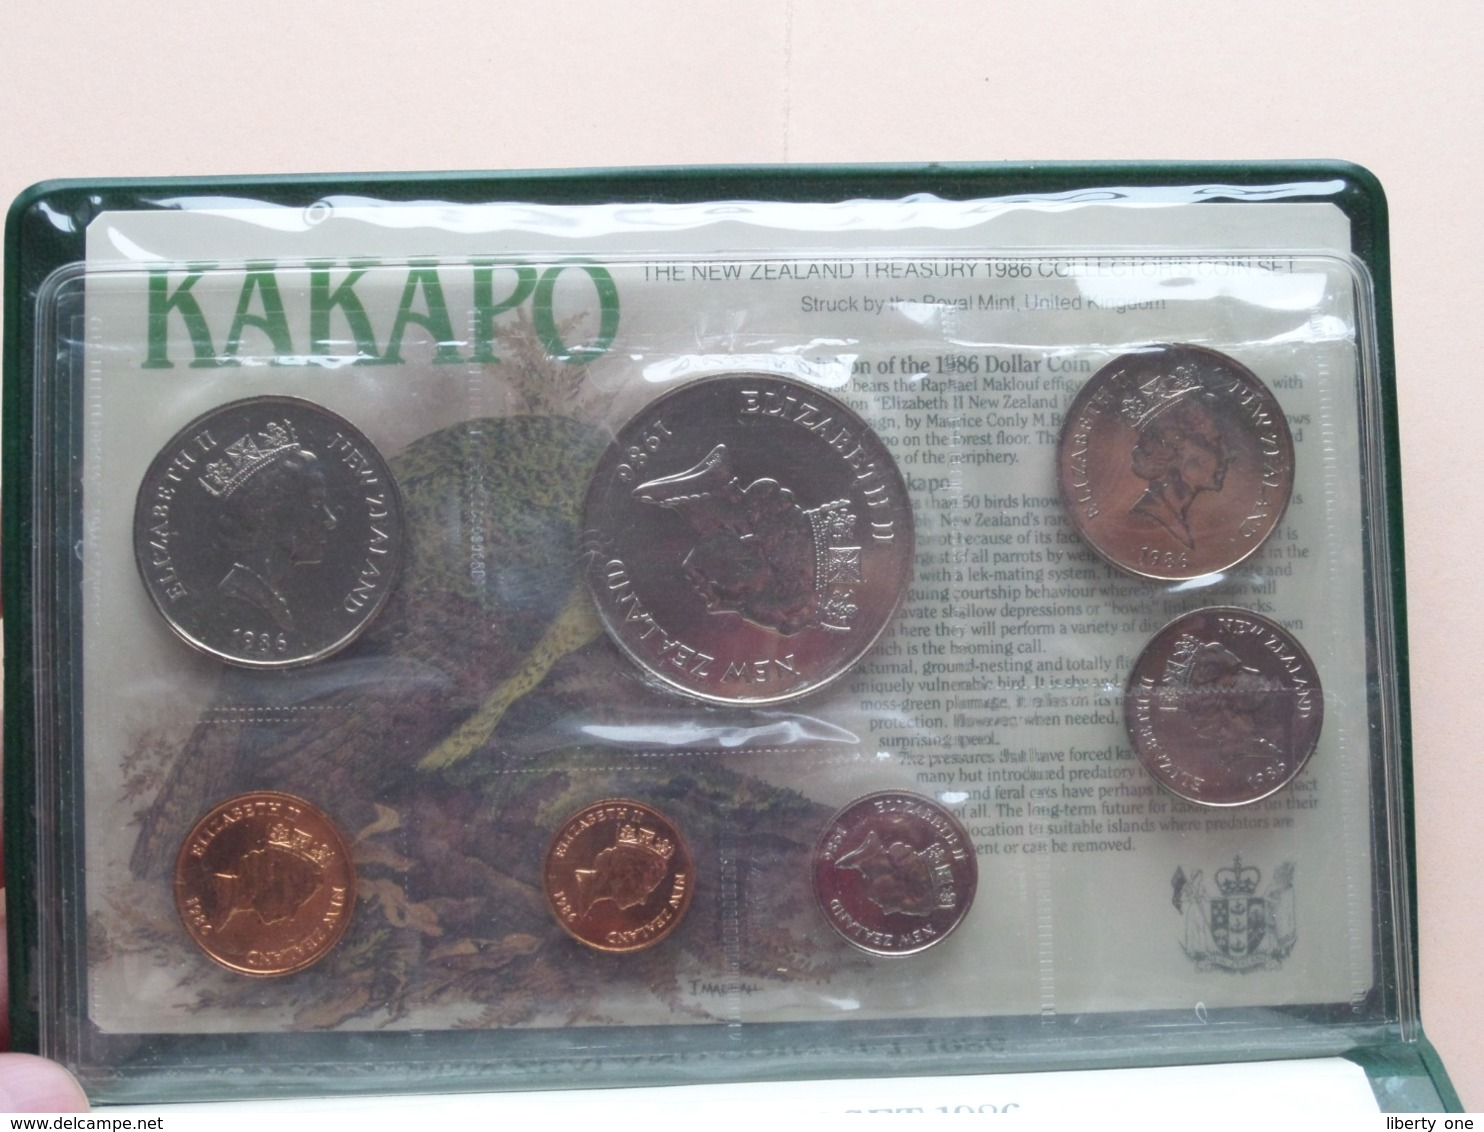 NEW ZEALAND COIN ISSUE 1986 Uncirculated Set ( KAKAPO / V.R. Ward ) > ( For Grade, Please See Photo ) ! - New Zealand